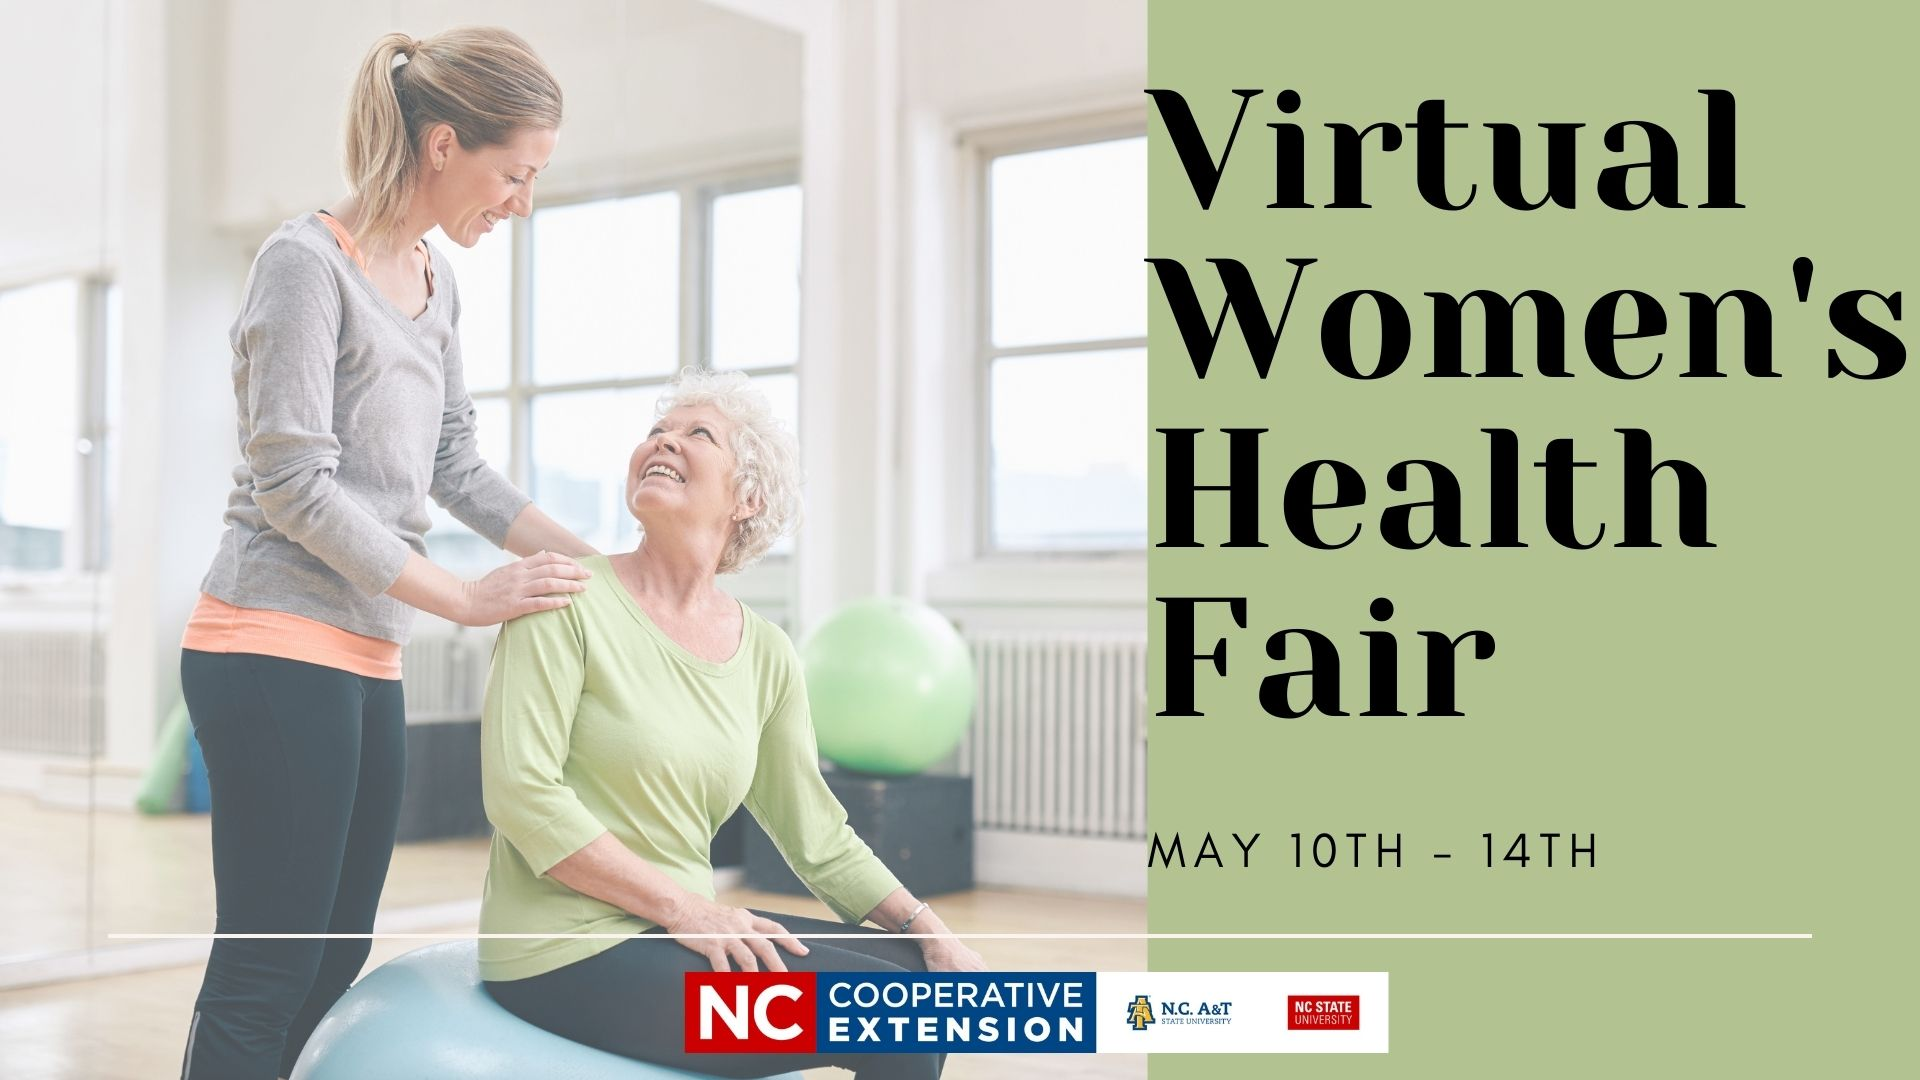 woman sitting on exercise ball-flyer advertising health fair